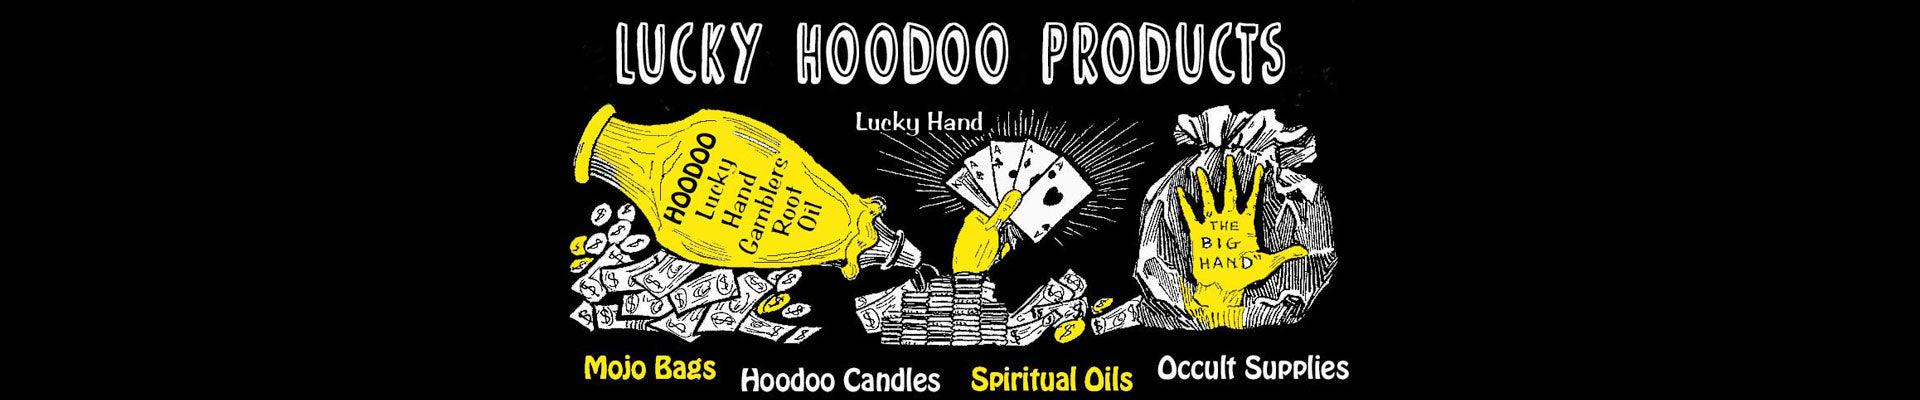 Lucky Hoodoo Products